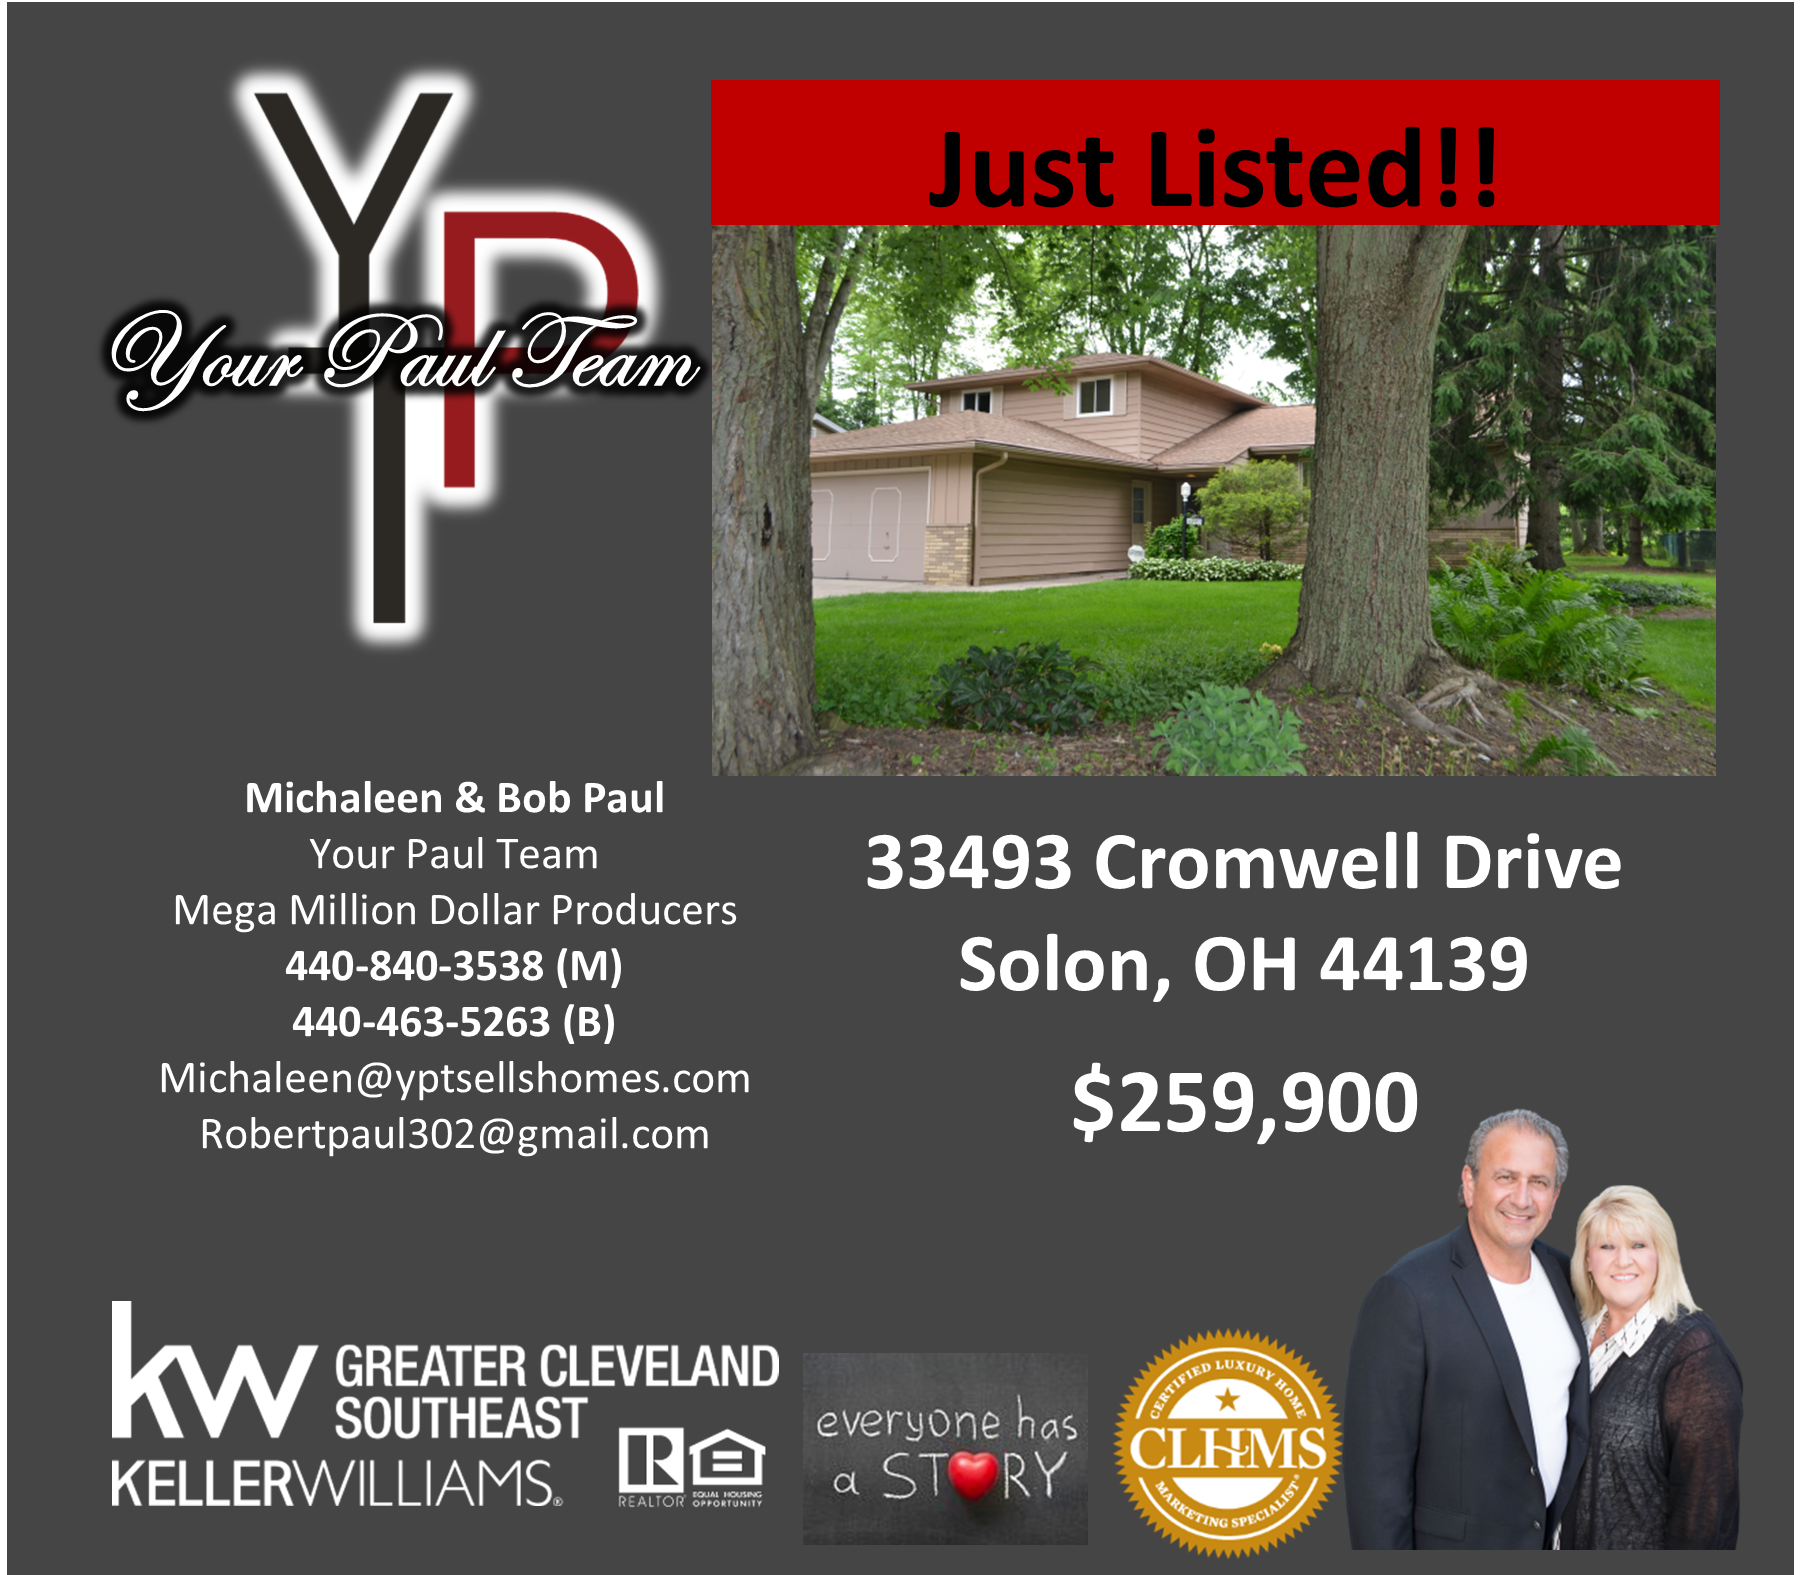 Arbor Place Dr: Just Listed! 755 Arbor Trails Drive